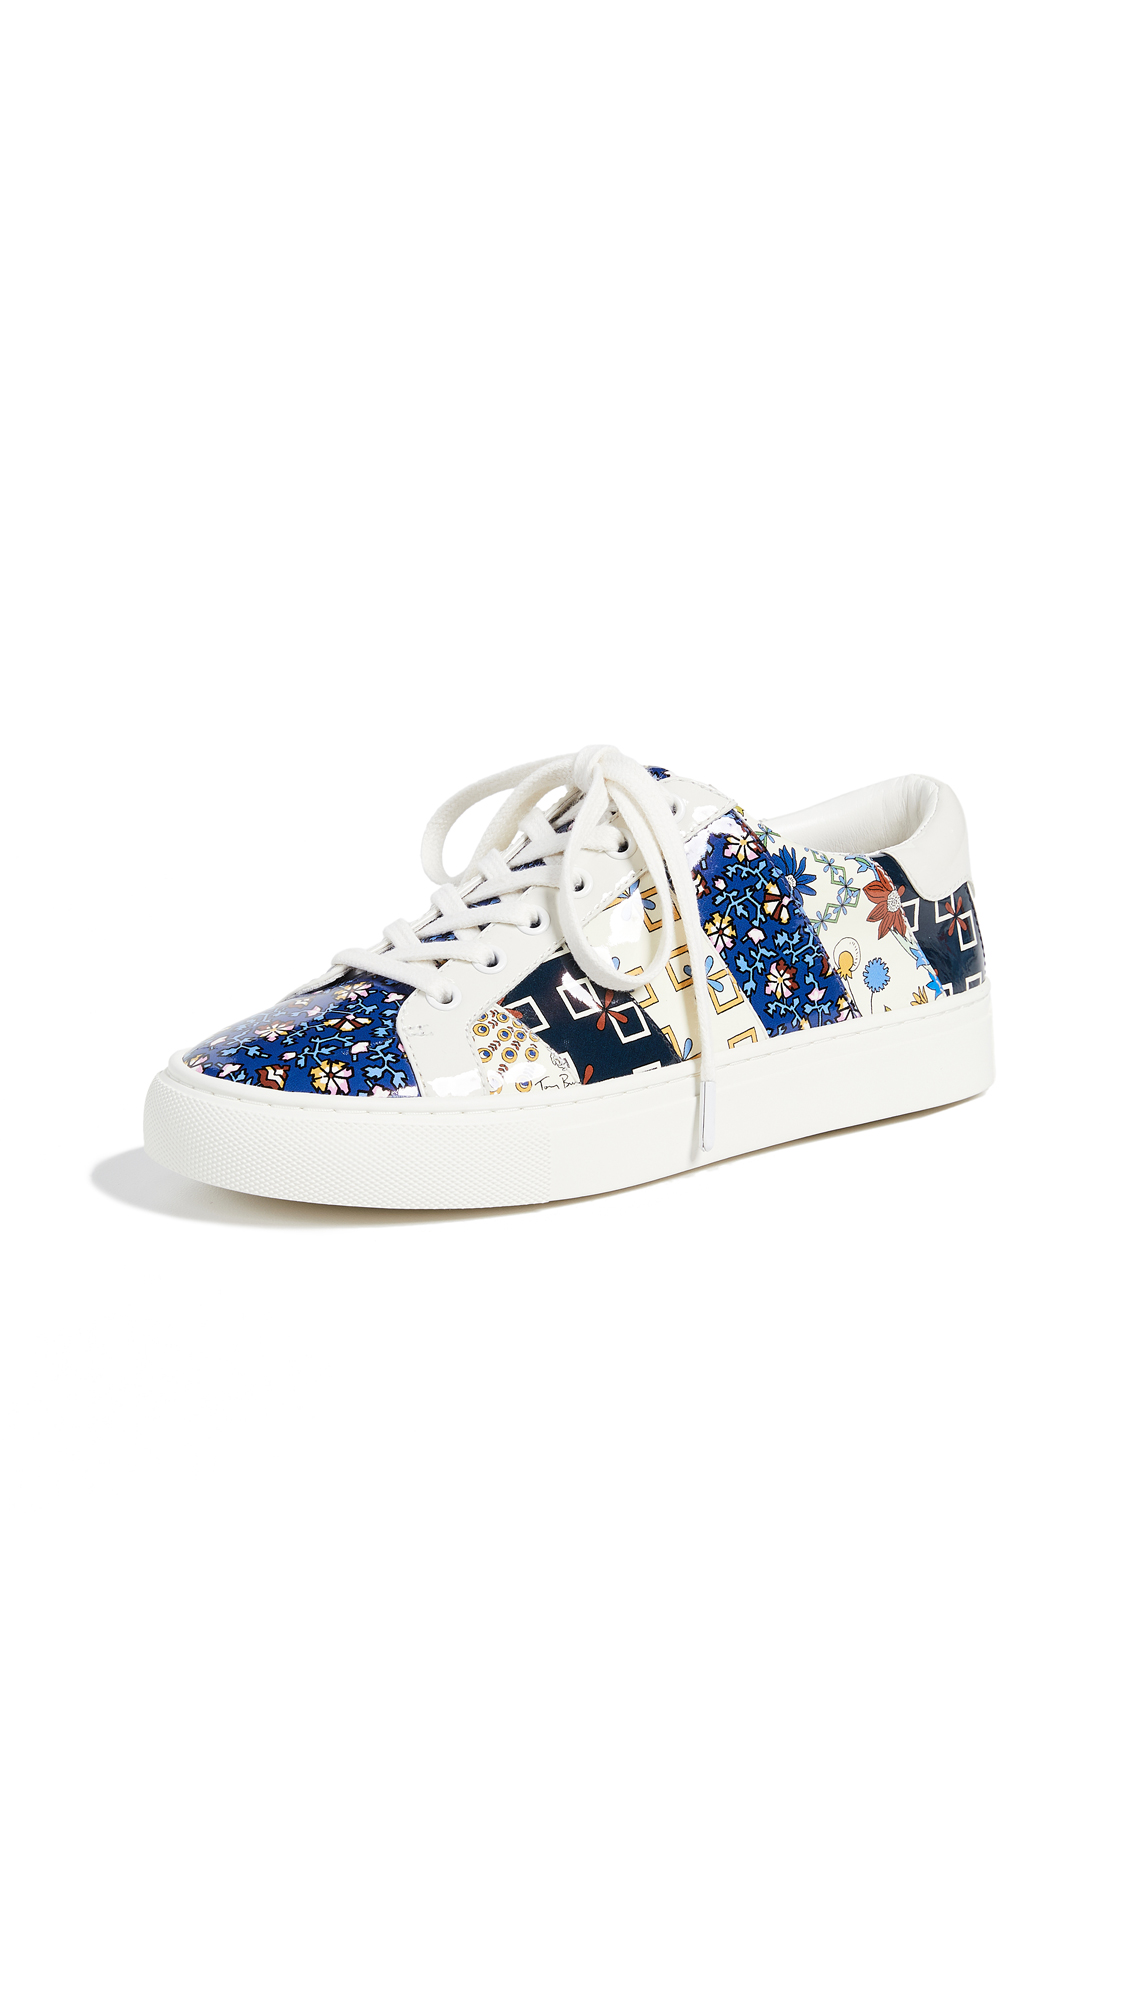 Tory Burch Ames Sneakers In Multi Print